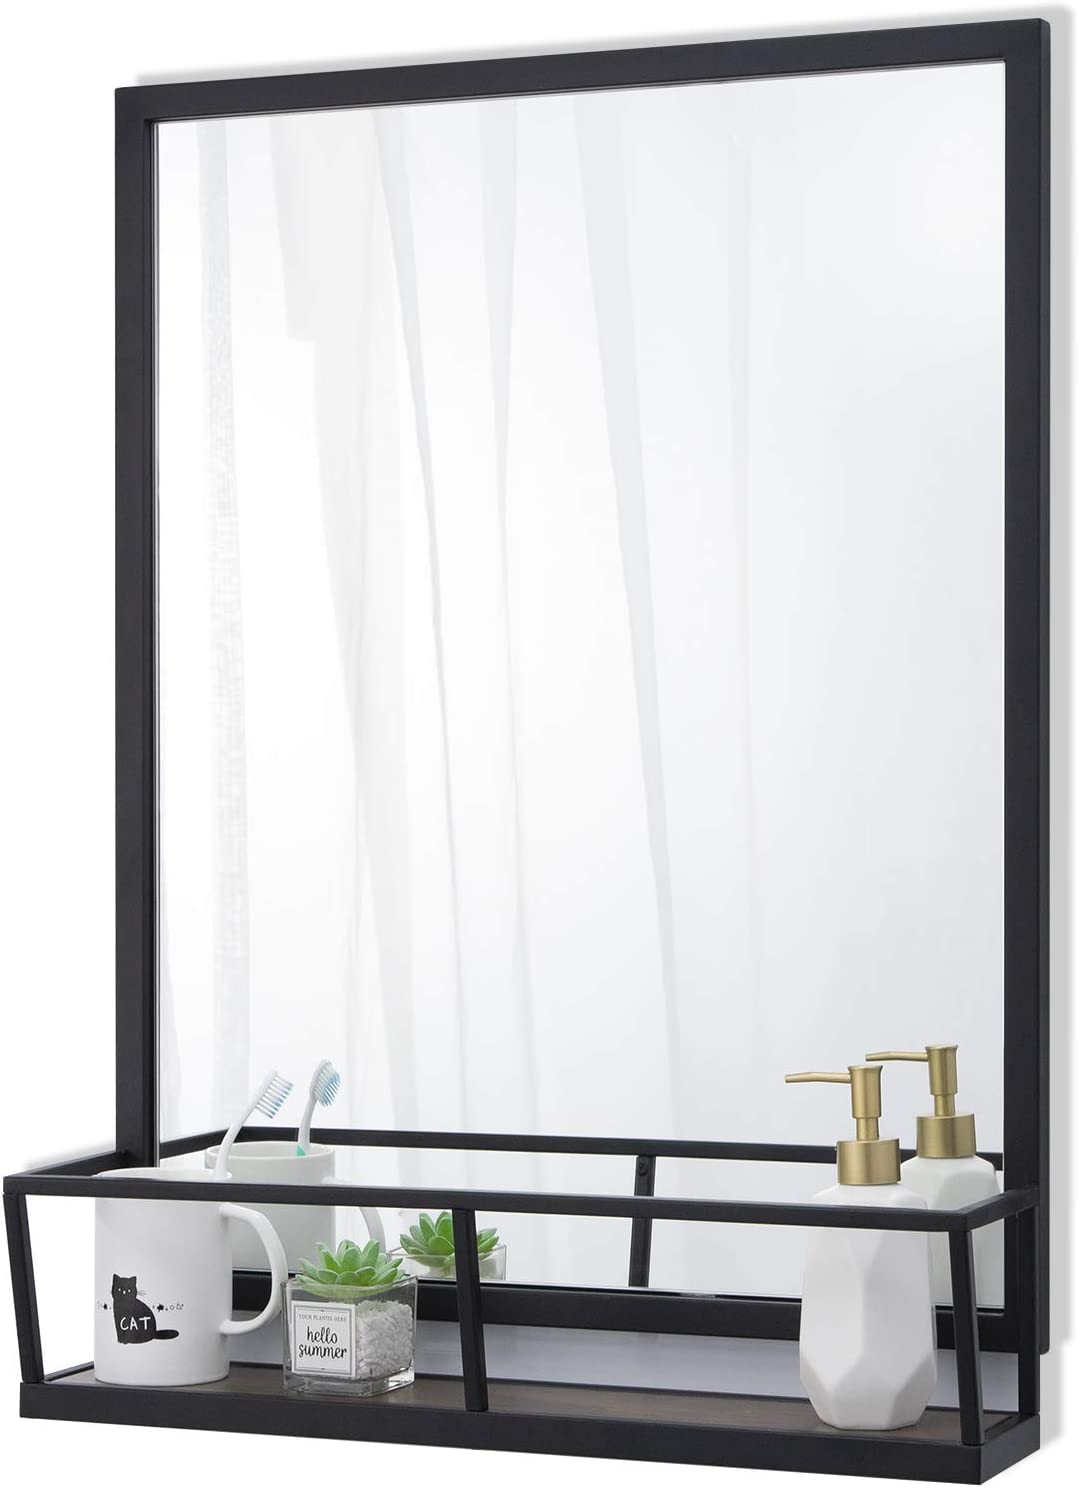 Chende Black Bathroom Mirror with Shelf, Large Accent Wall Mirror for Decor, Rectangle Decorative Mirror with Metal Iron Frame for Foyer, 30.3''H x 22.4''W